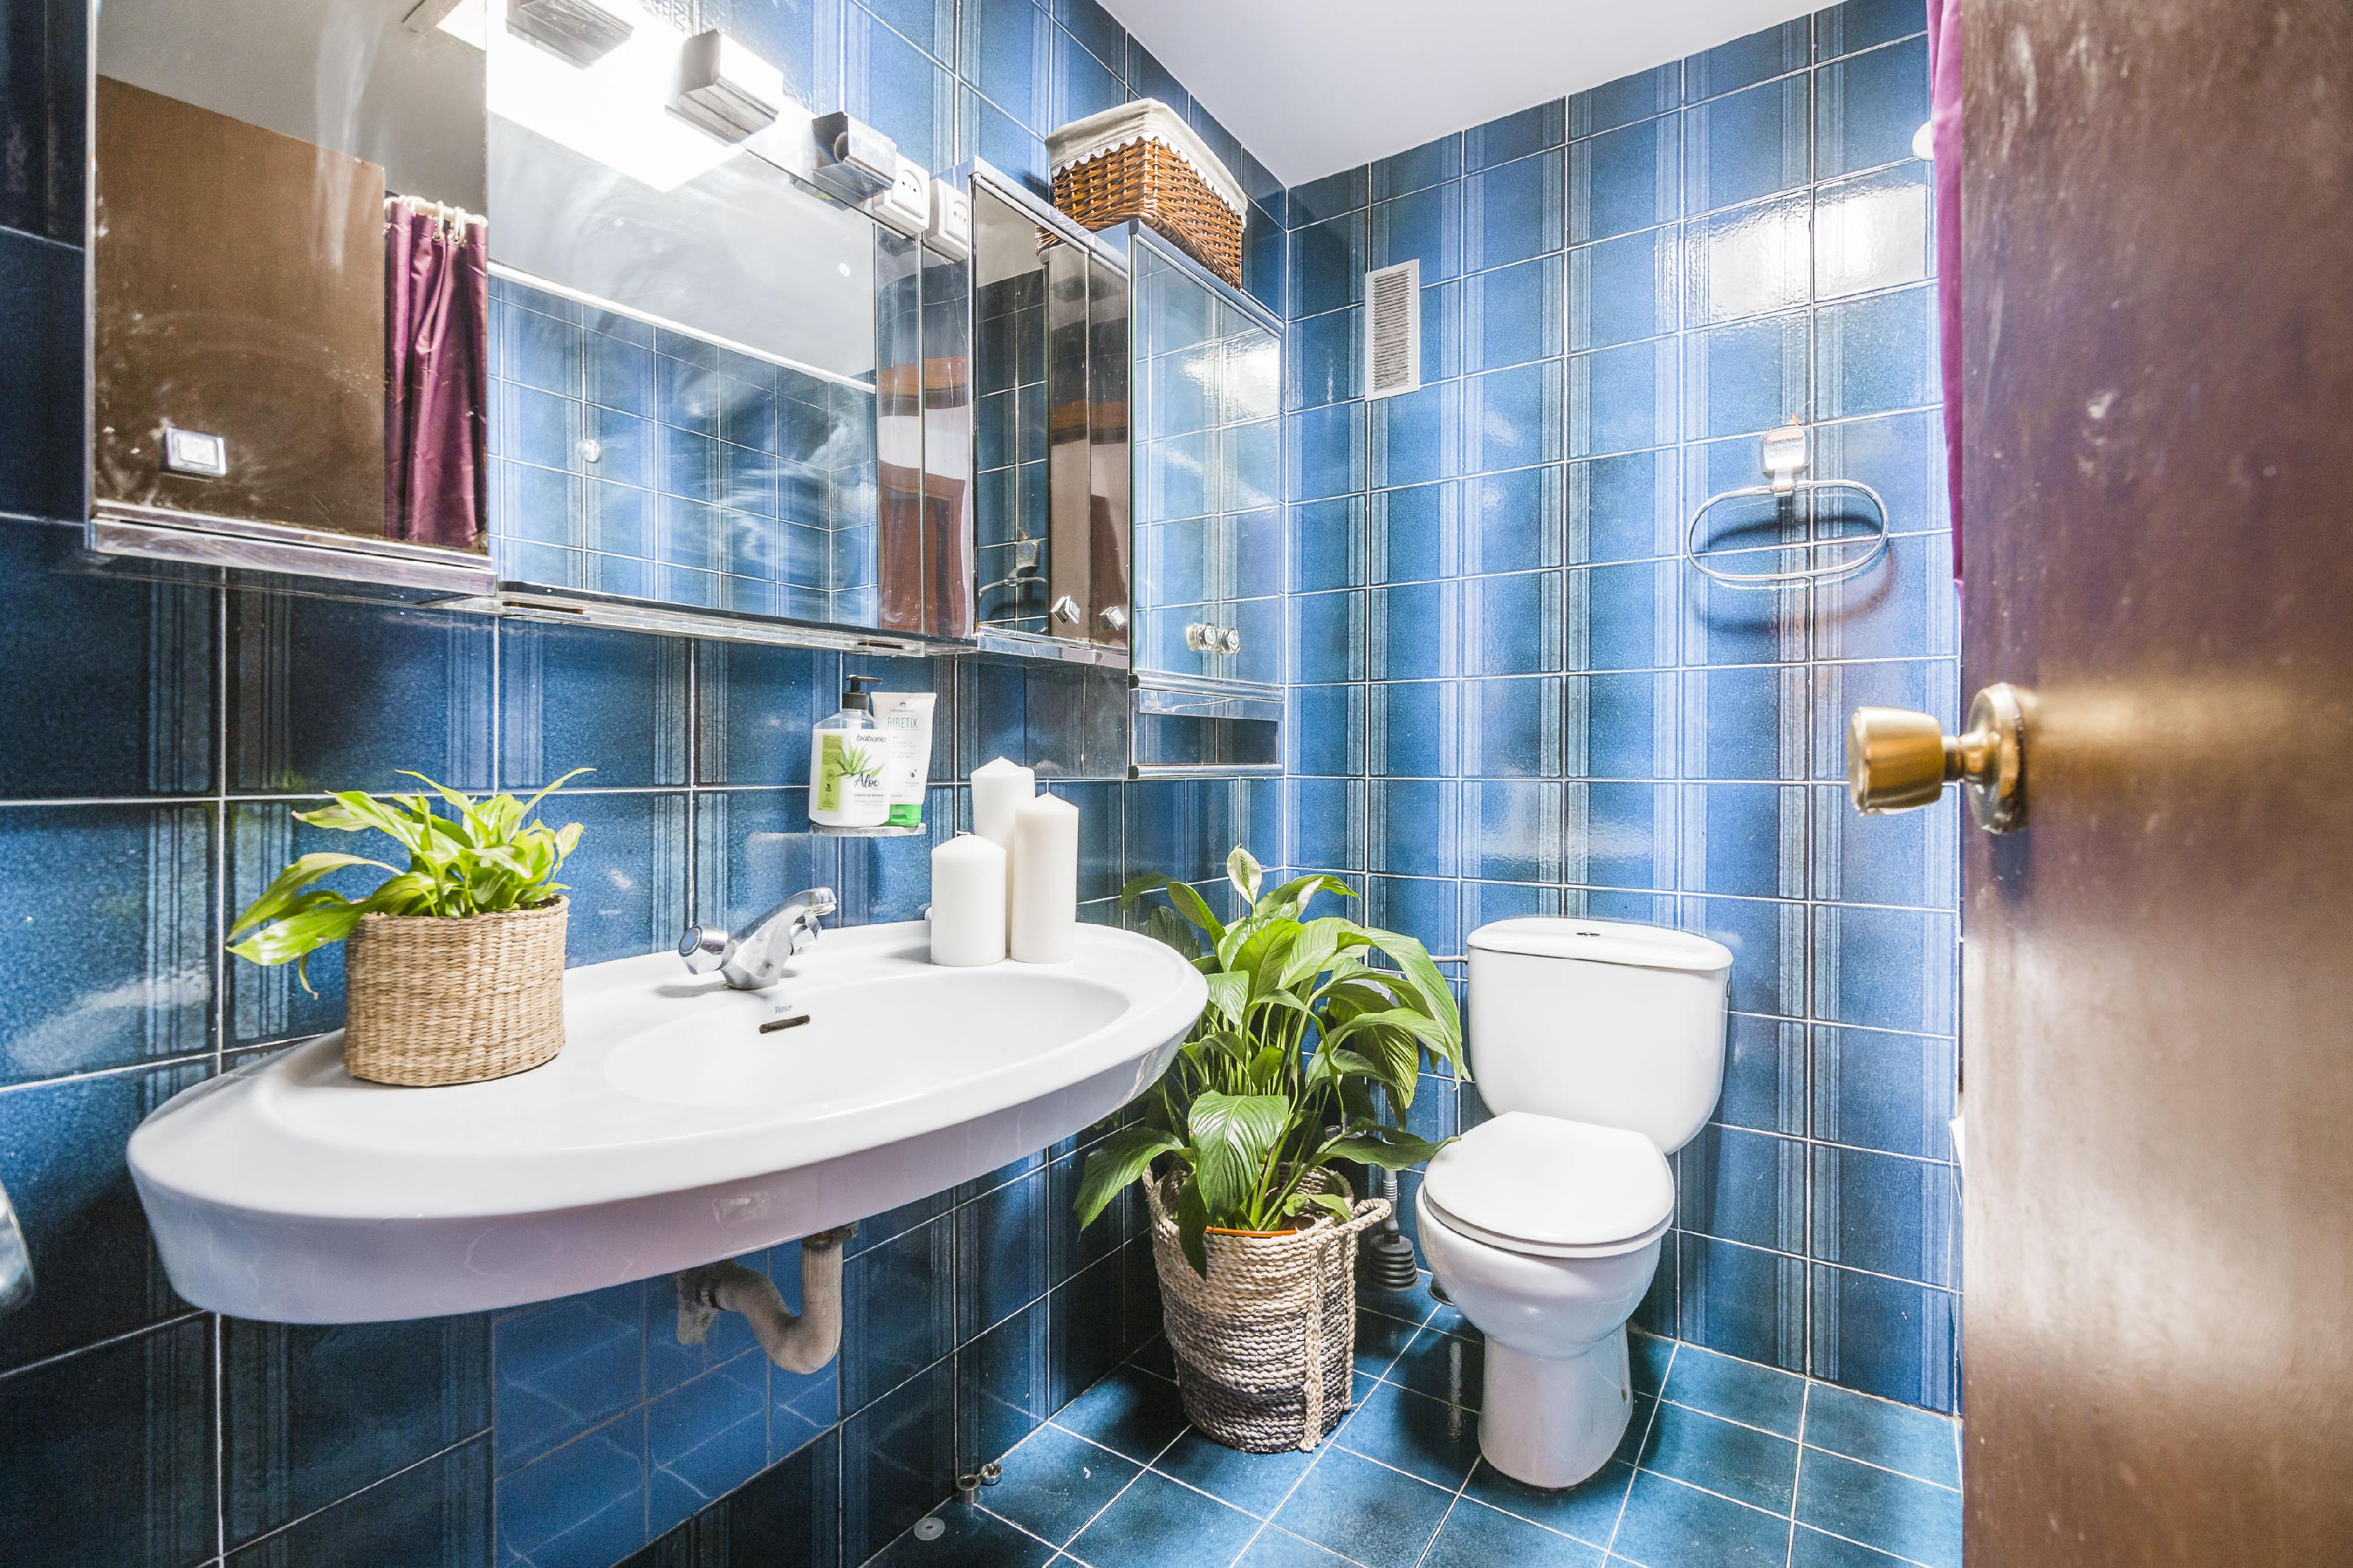 239426 Flat for sale in Les Corts, Les Corts 7